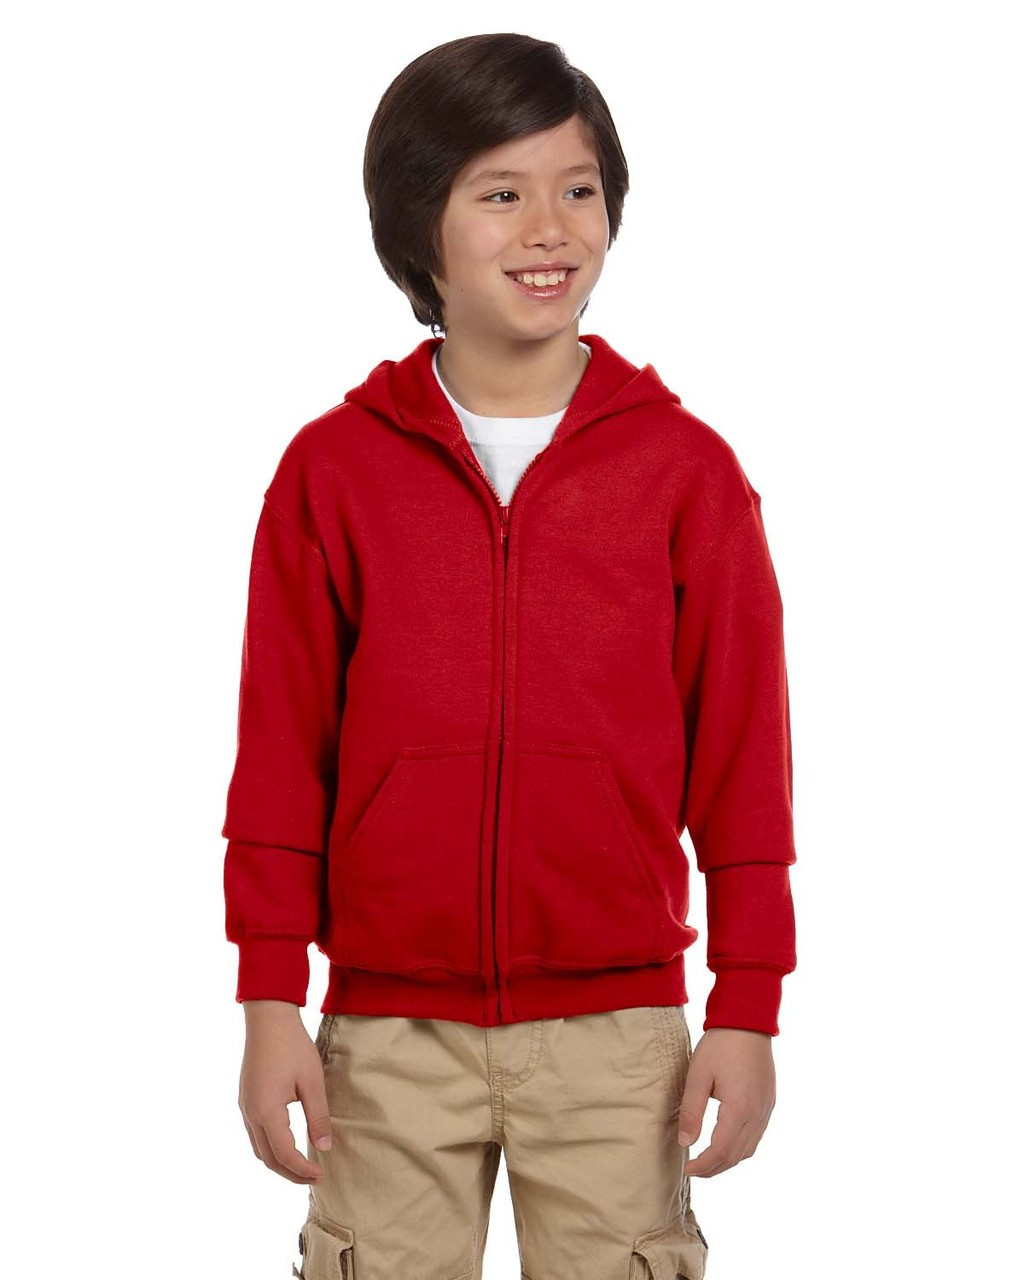 Red - G186B Gildan Heavy Blend Youth 50/50 Full Zip Hoodie | Blankclothing.ca